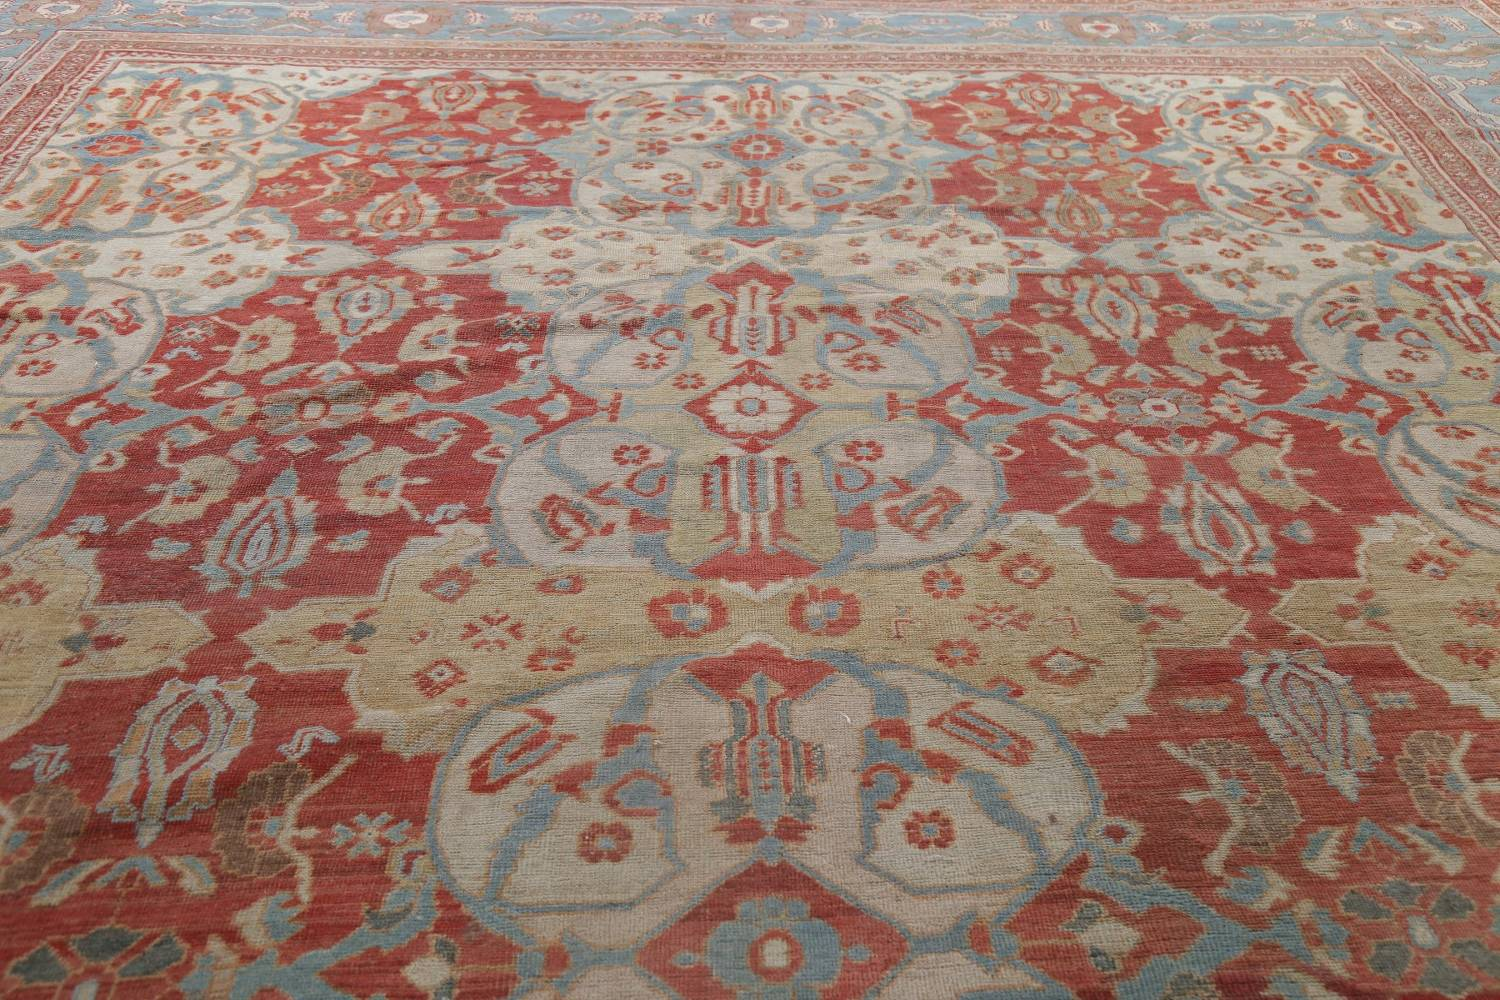 Palace Size Pre-1900 Antique Sultanabad Persian Rug 14x24 image 15